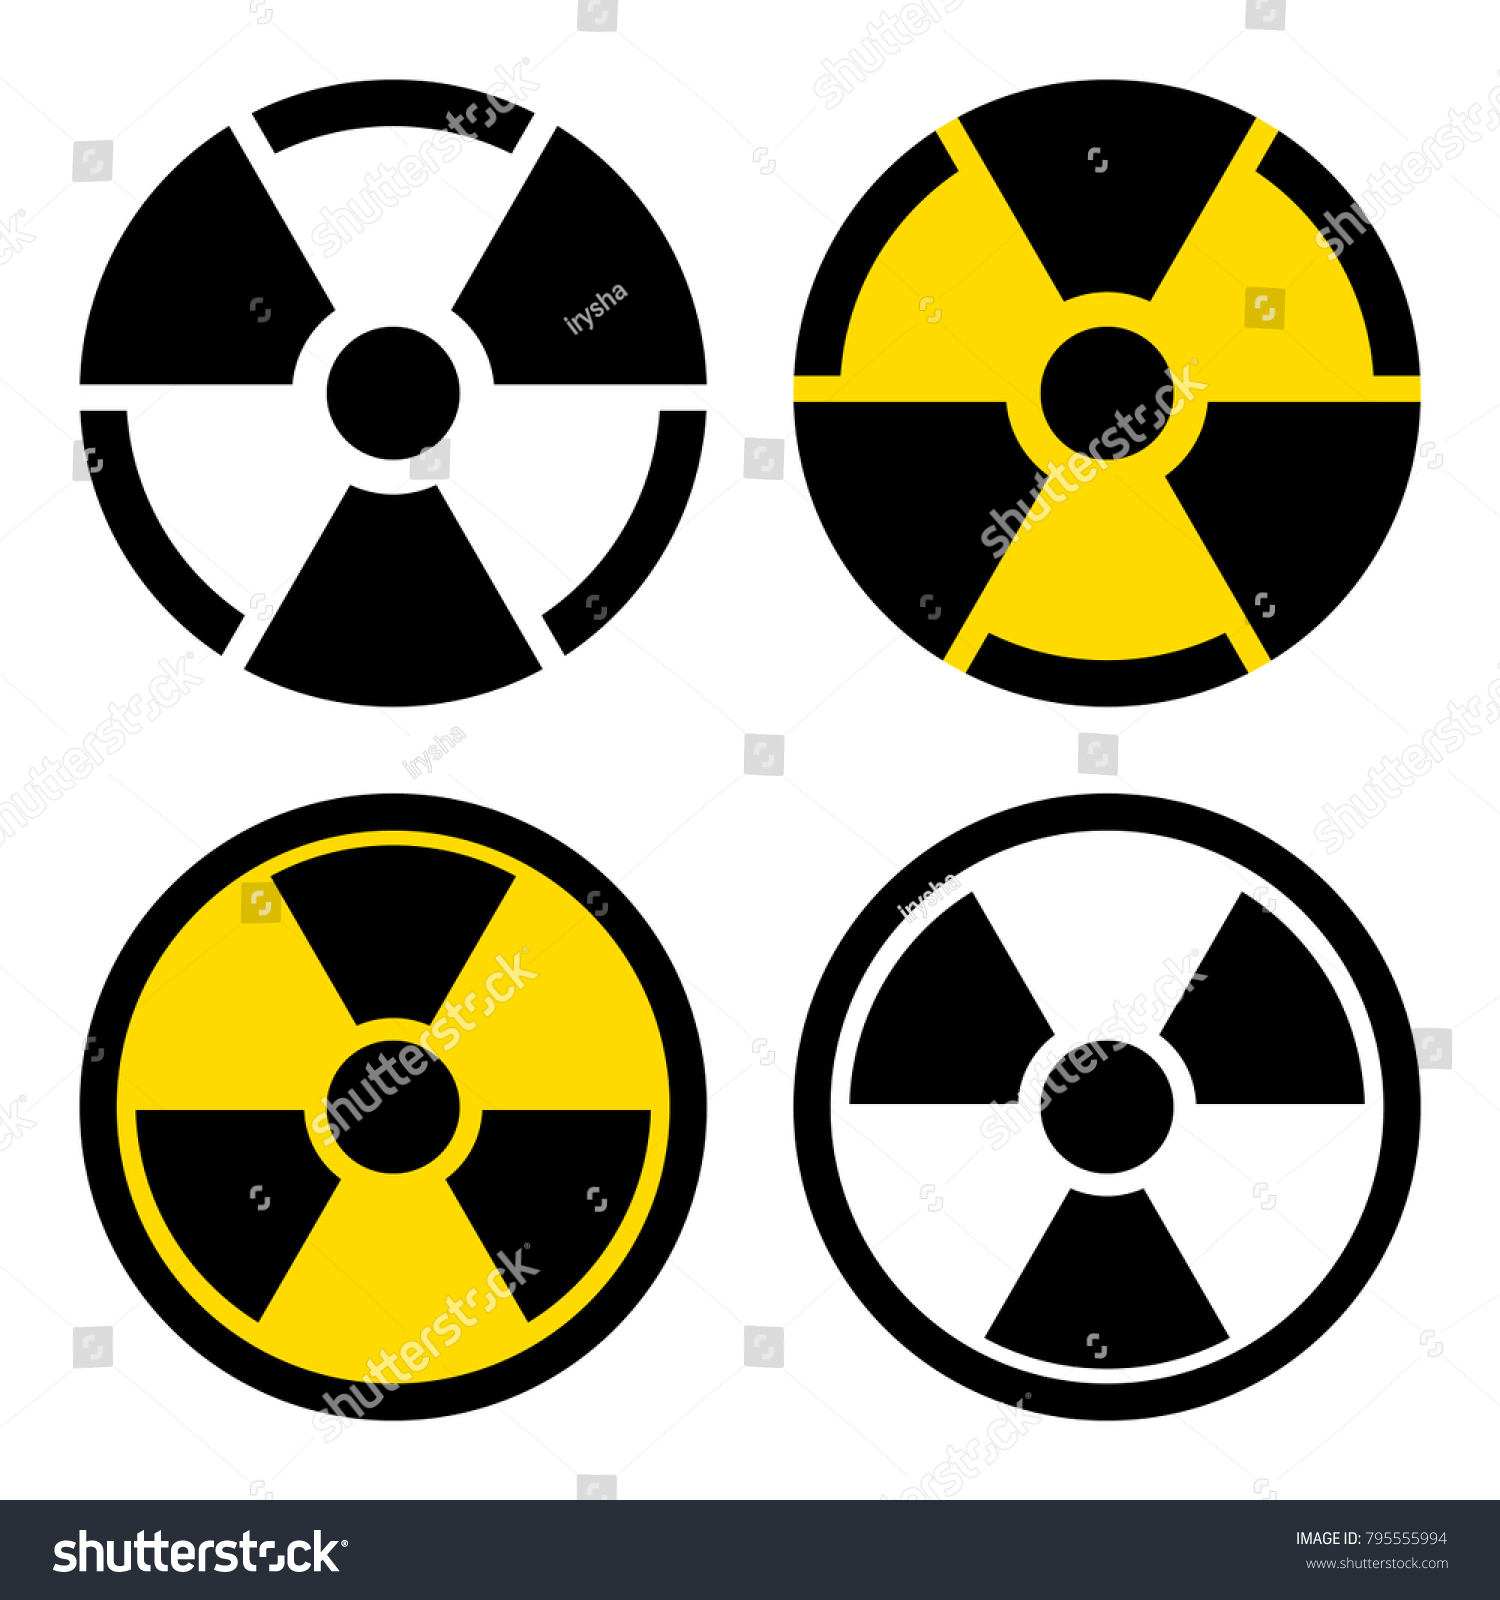 Radiation symbol vector icon flat sign stock vector 795555994 radiation symbol vector icon flat sign stock vector 795555994 shutterstock biocorpaavc Gallery